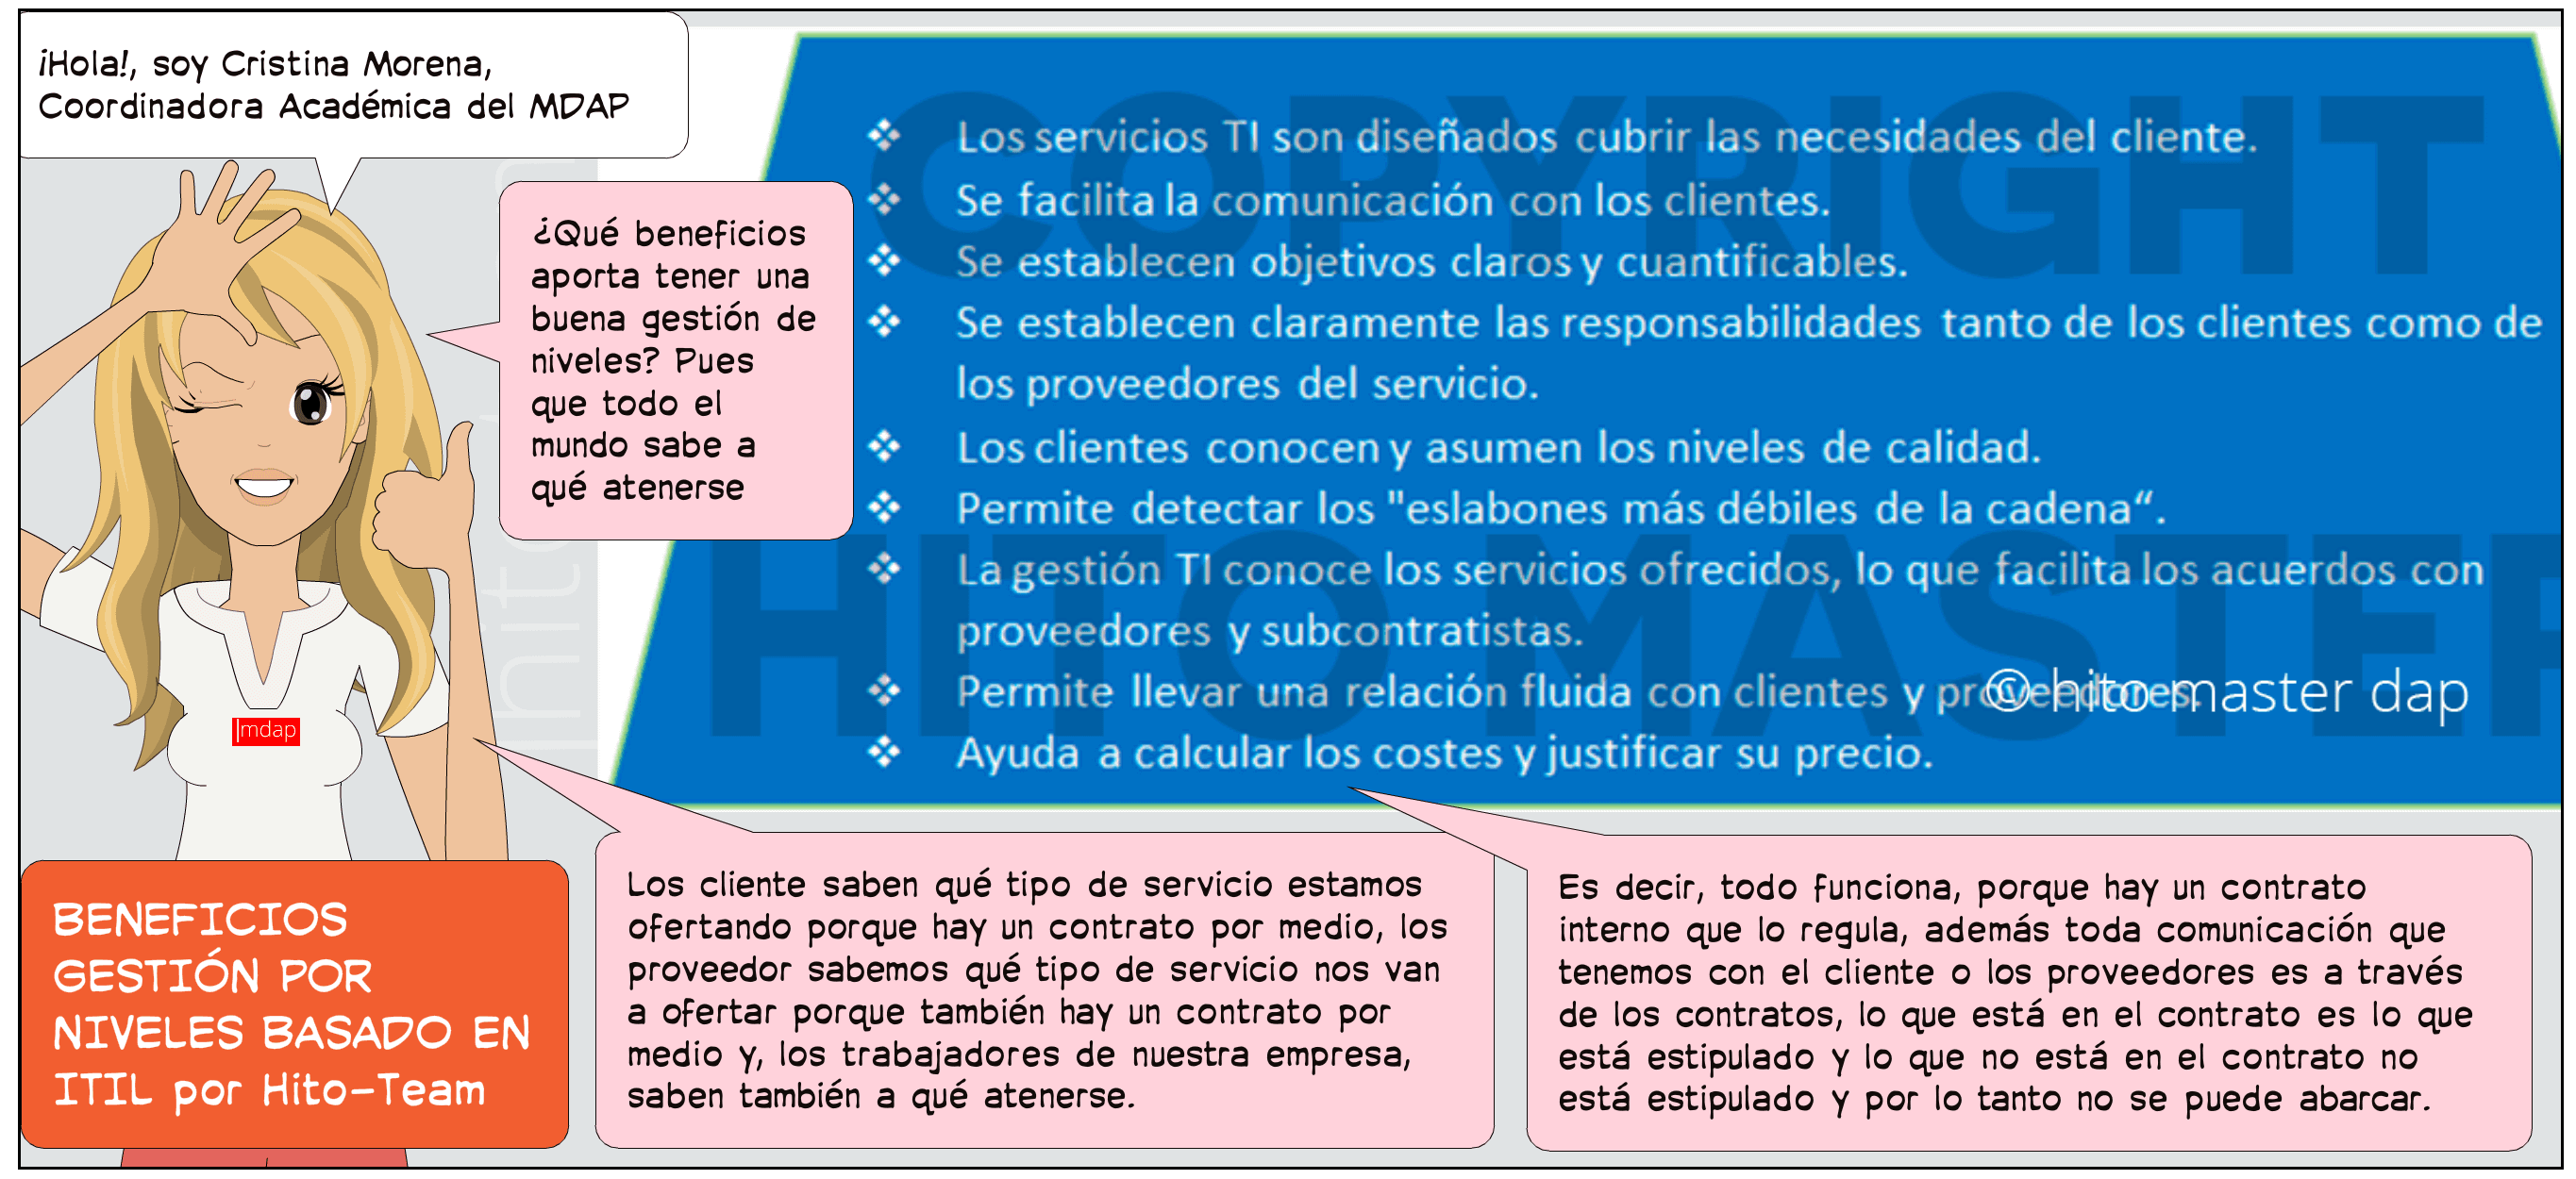 beneficio_gestion_niveles_itil